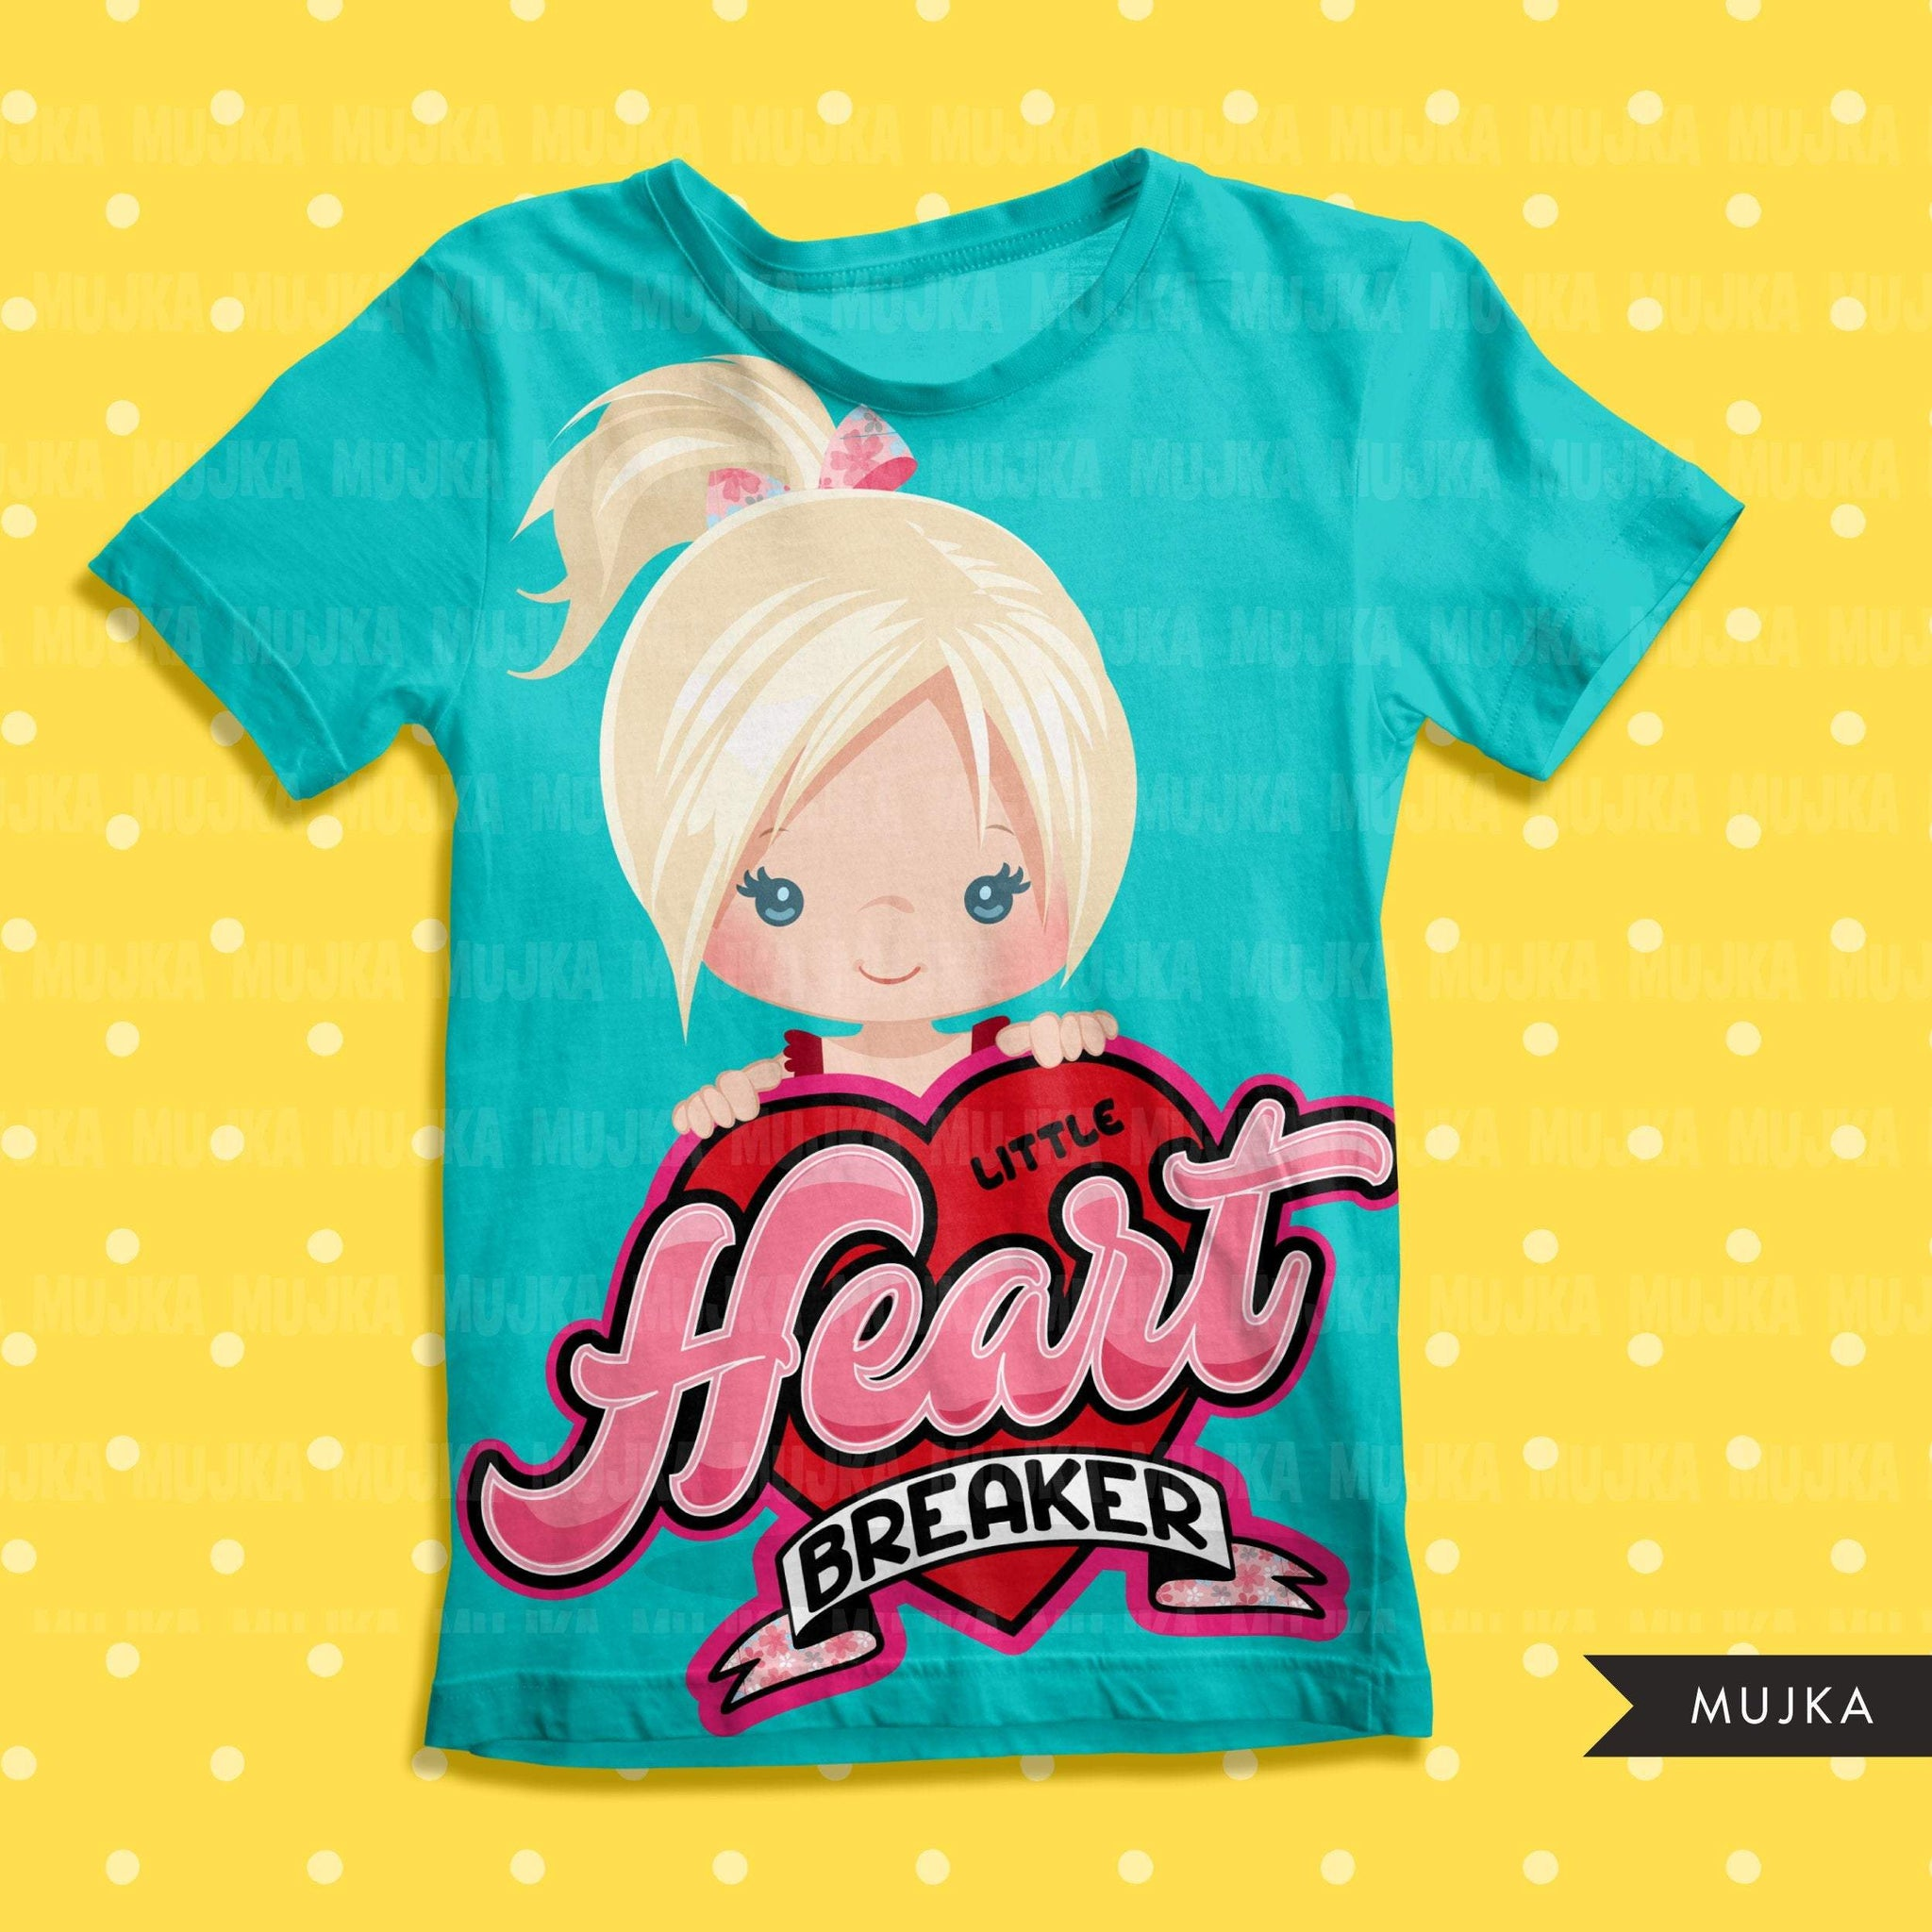 valentines day png digital little heart breaker sublimation image transfer clipart t-shirt graphics little girl